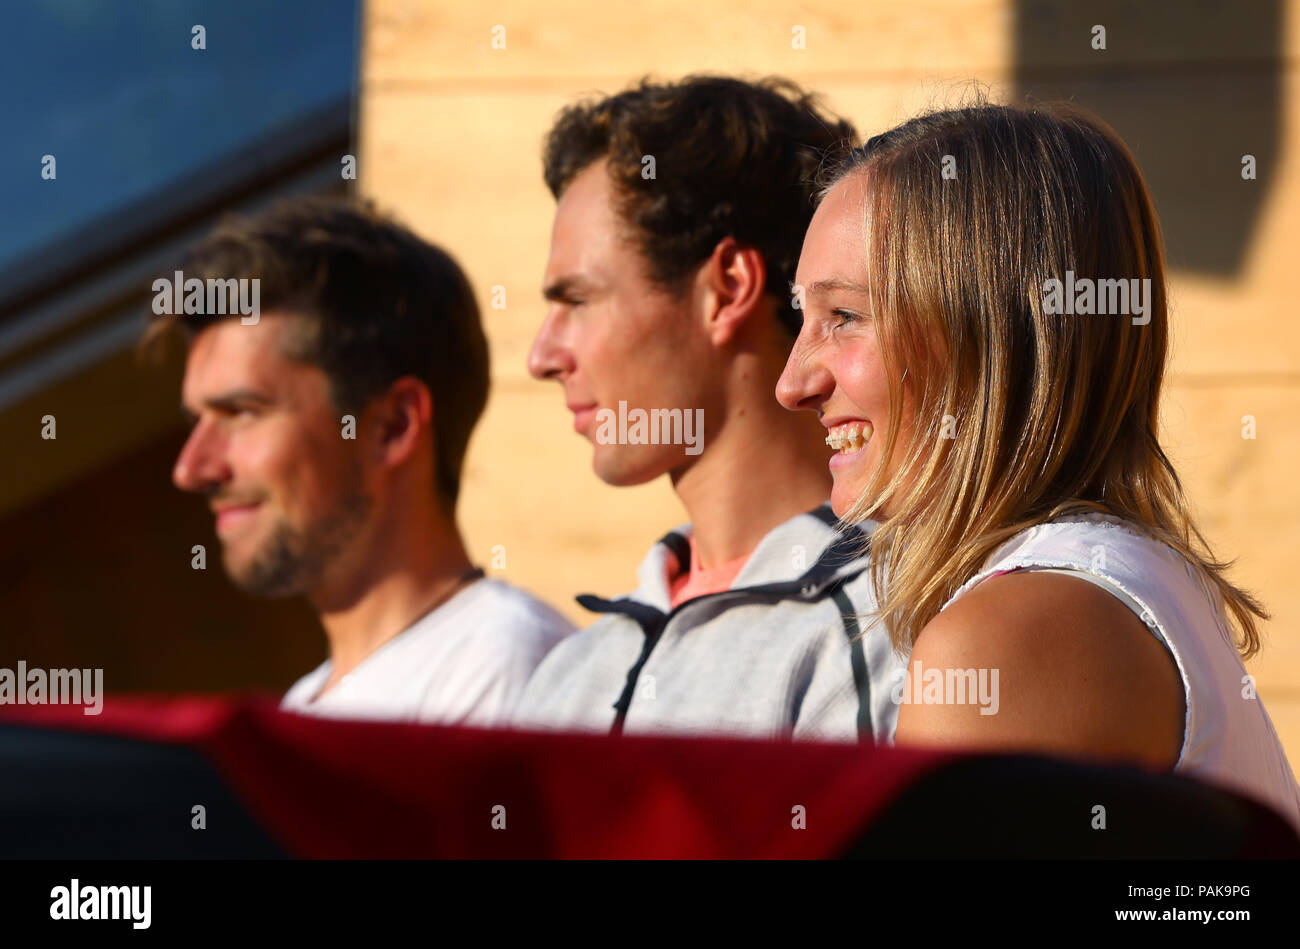 Germany, Oberstdorf. 23rd July, 2018. The Nordic combined athletes Johannes Rydzek (l-r), Vinzenz Geiger and the ski jumper Katharina Althaus sit on the podium in front of the logo presentation for the FIS Nordic World Ski Championships 2021. Credit: Karl-Josef Hildenbrand/dpa/Alamy Live News - Stock Image